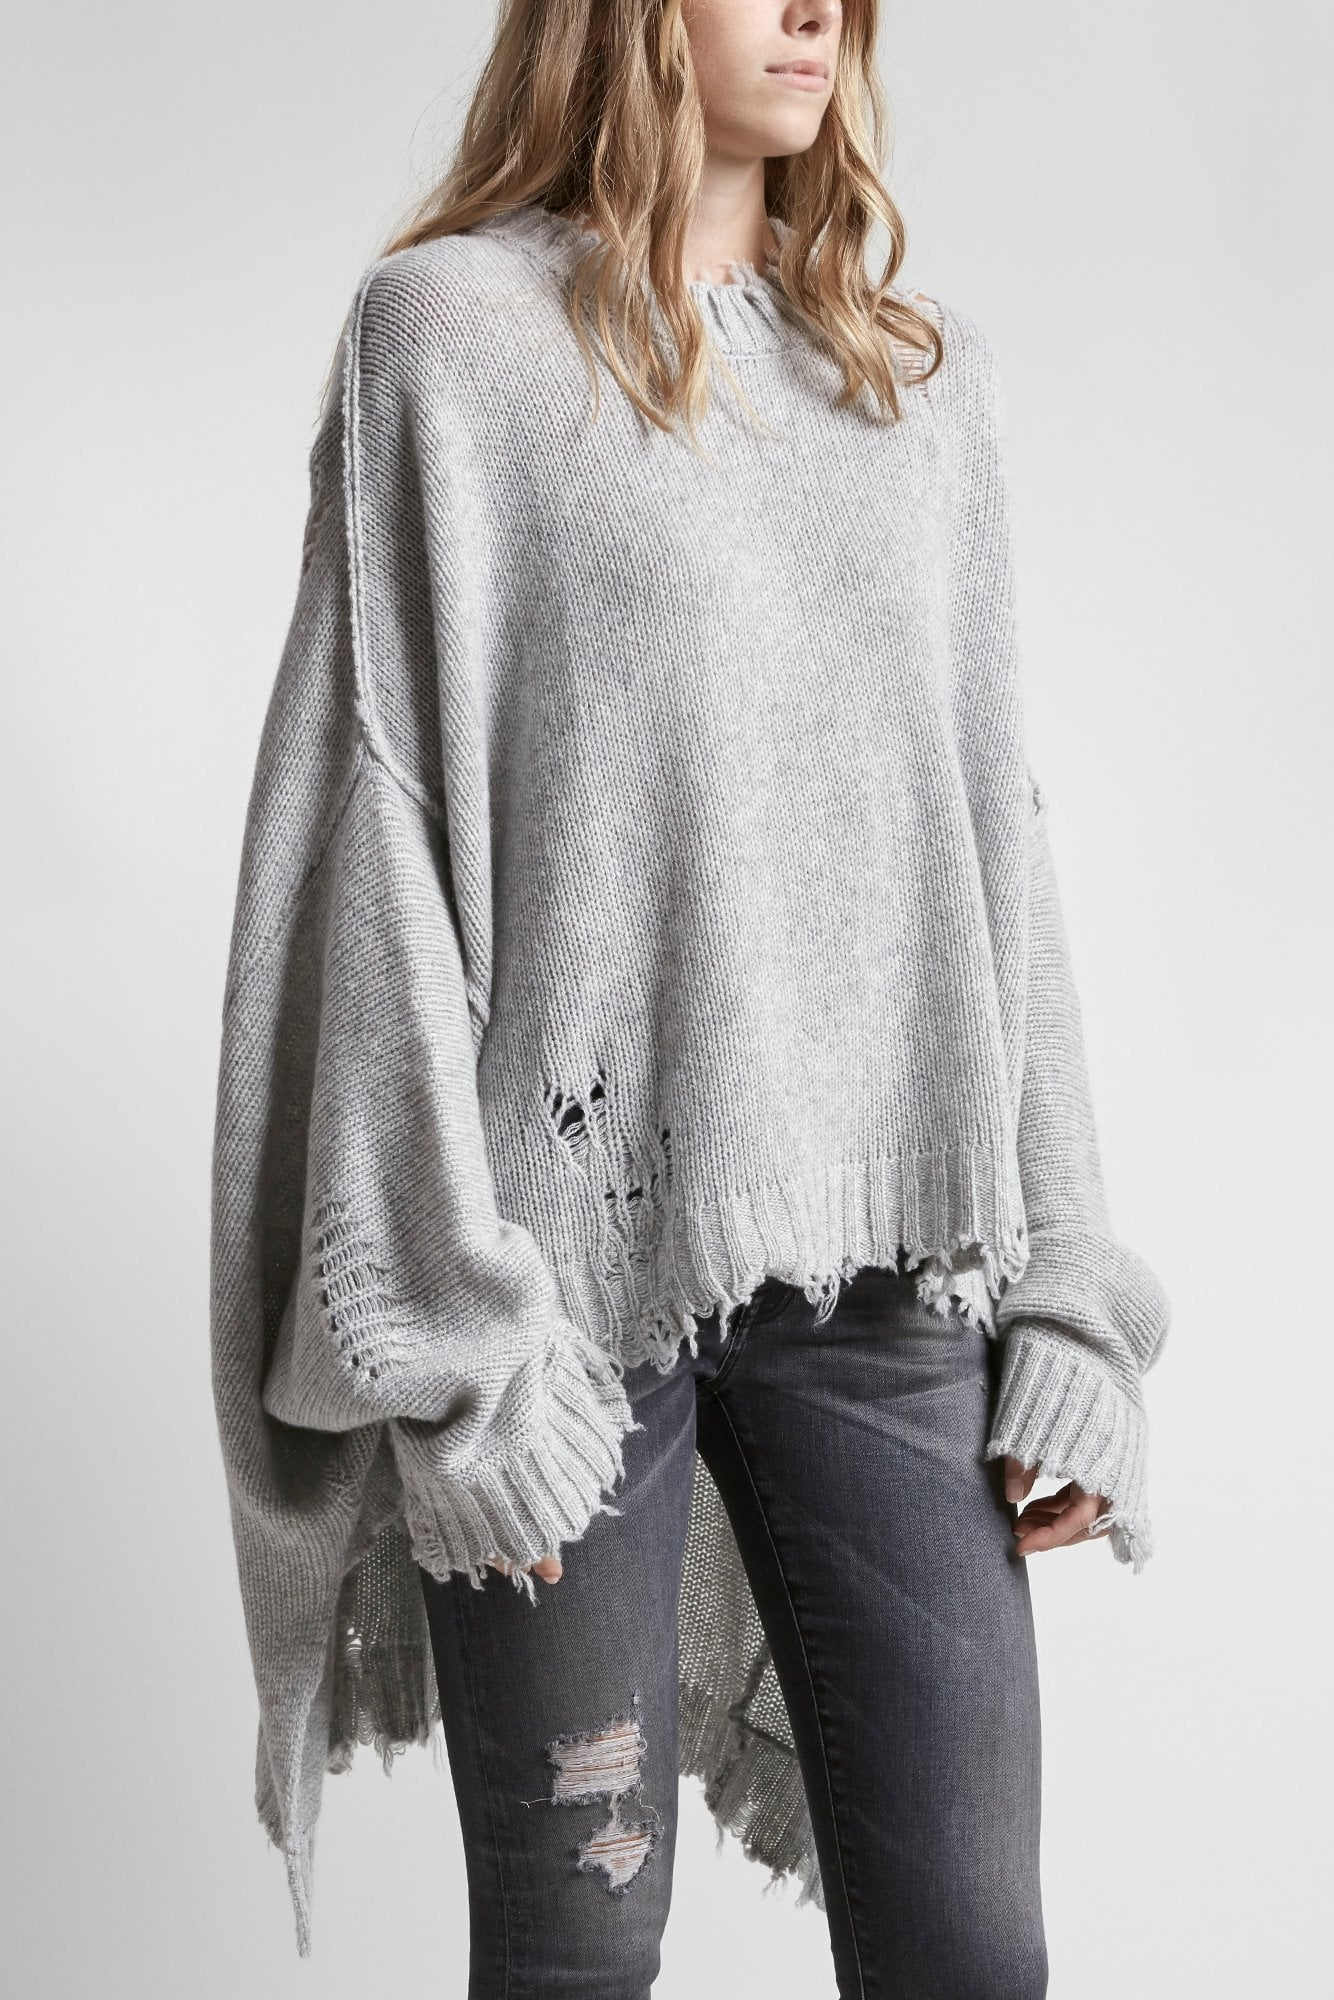 Distressed Cashmere Patti Sweater - Heather Grey